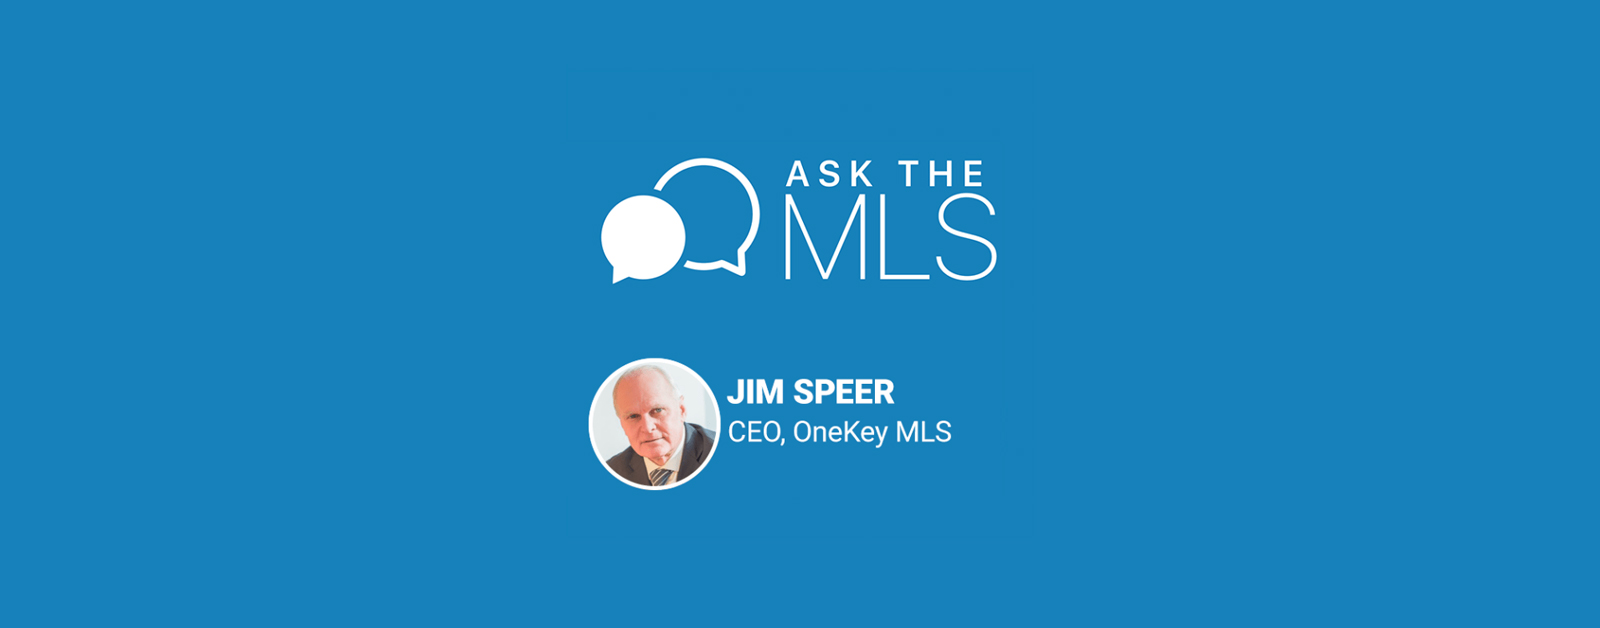 Ask the MLS Jim Speer